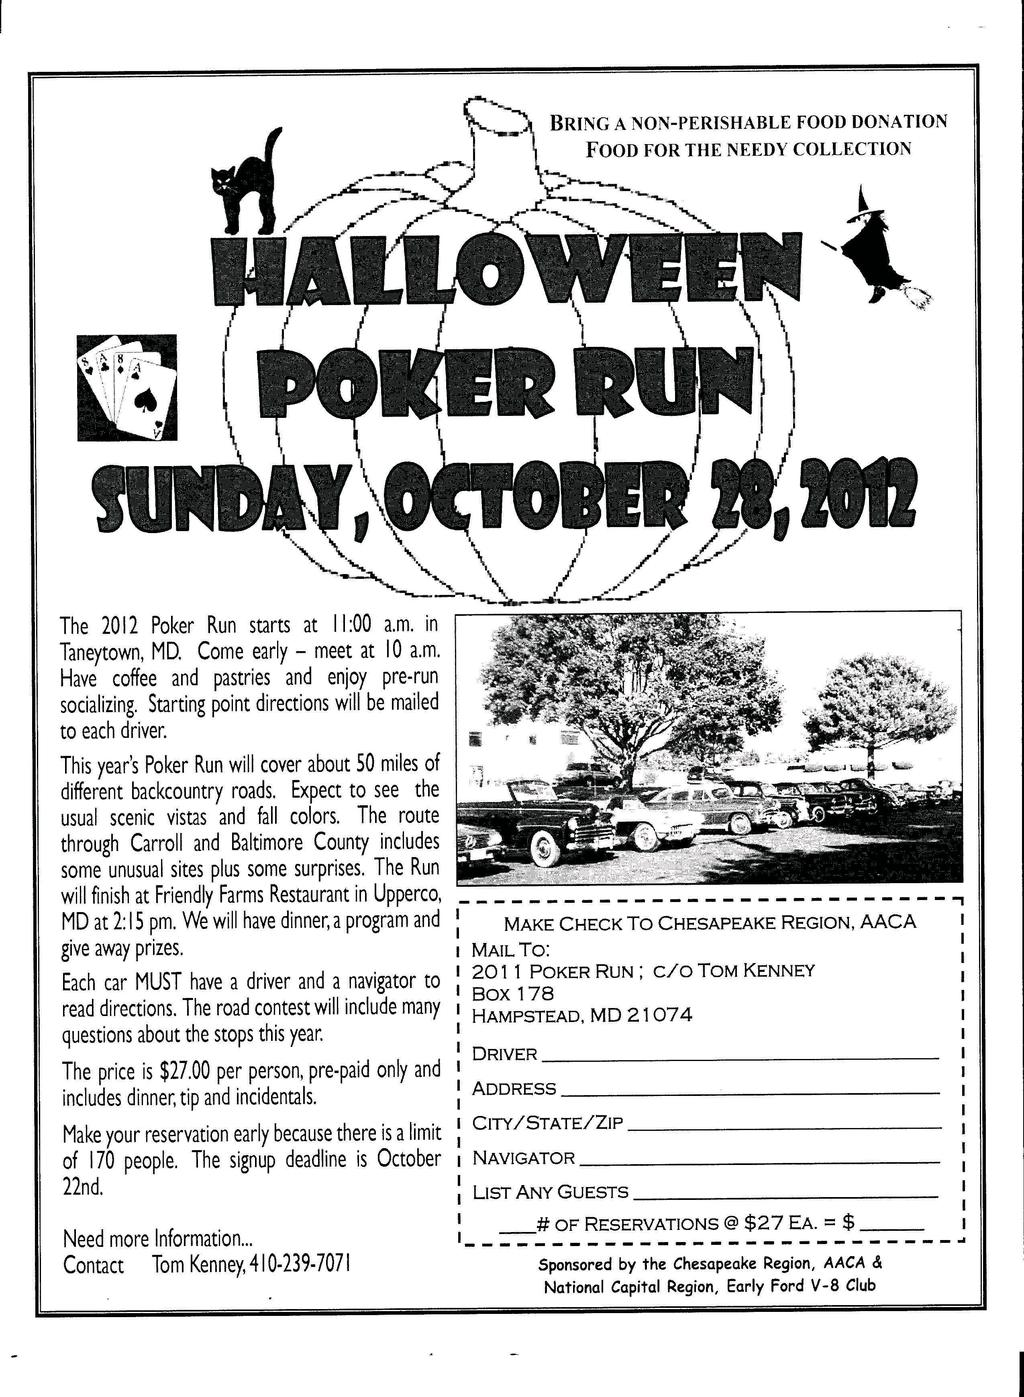 "\ ~ ""..\., '\.. '\ '-~~... '--~ '\ I \ / J I',/_p /// "". \...-L...-L-_... r The 2012 Poker Run starts at II :00 a.m. in Taneytown, MD. Come early - meet at 10 a.m. Have coffee and pastries and enjoy pre-run socializing."